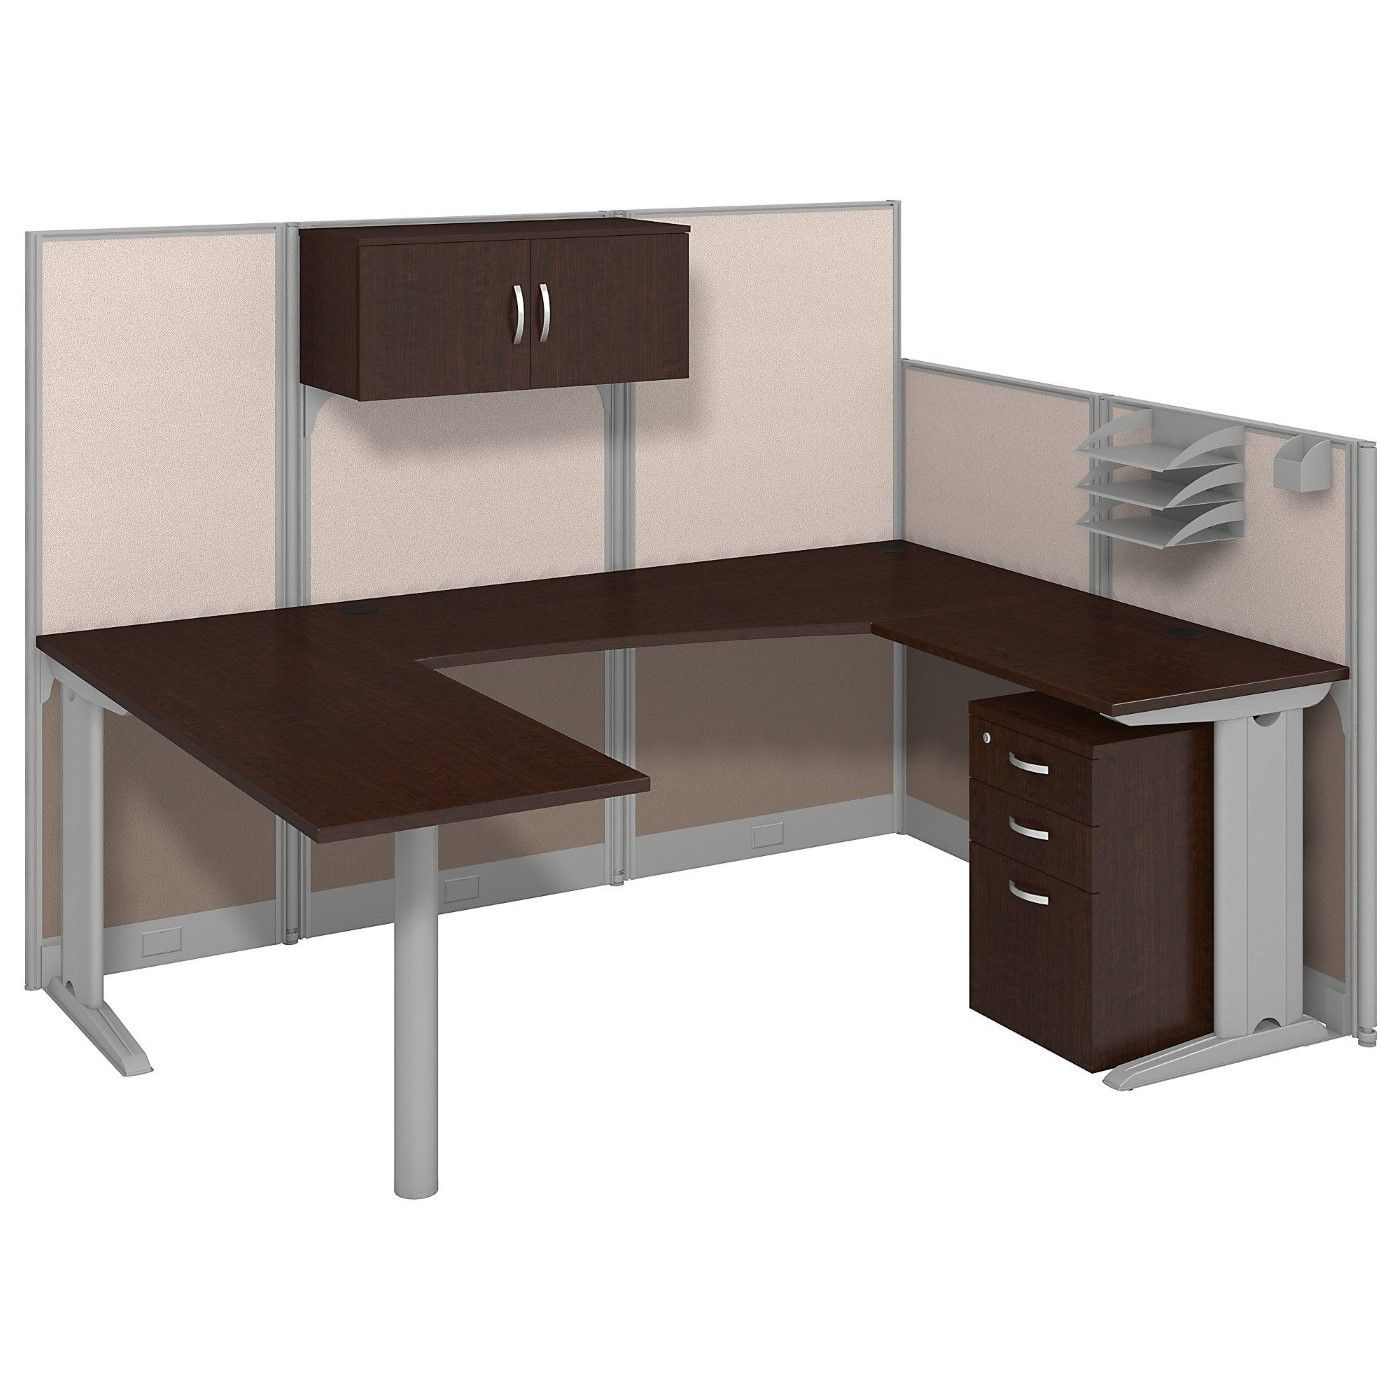 <b>BUSINESS FURNITURE: OFFICE CUBICLES. MODULAR OFFICE FURNITURE. SOCIAL DISTANCING FURNITURE. FREE SHIPPING IN 5-7 DAYS:</b>